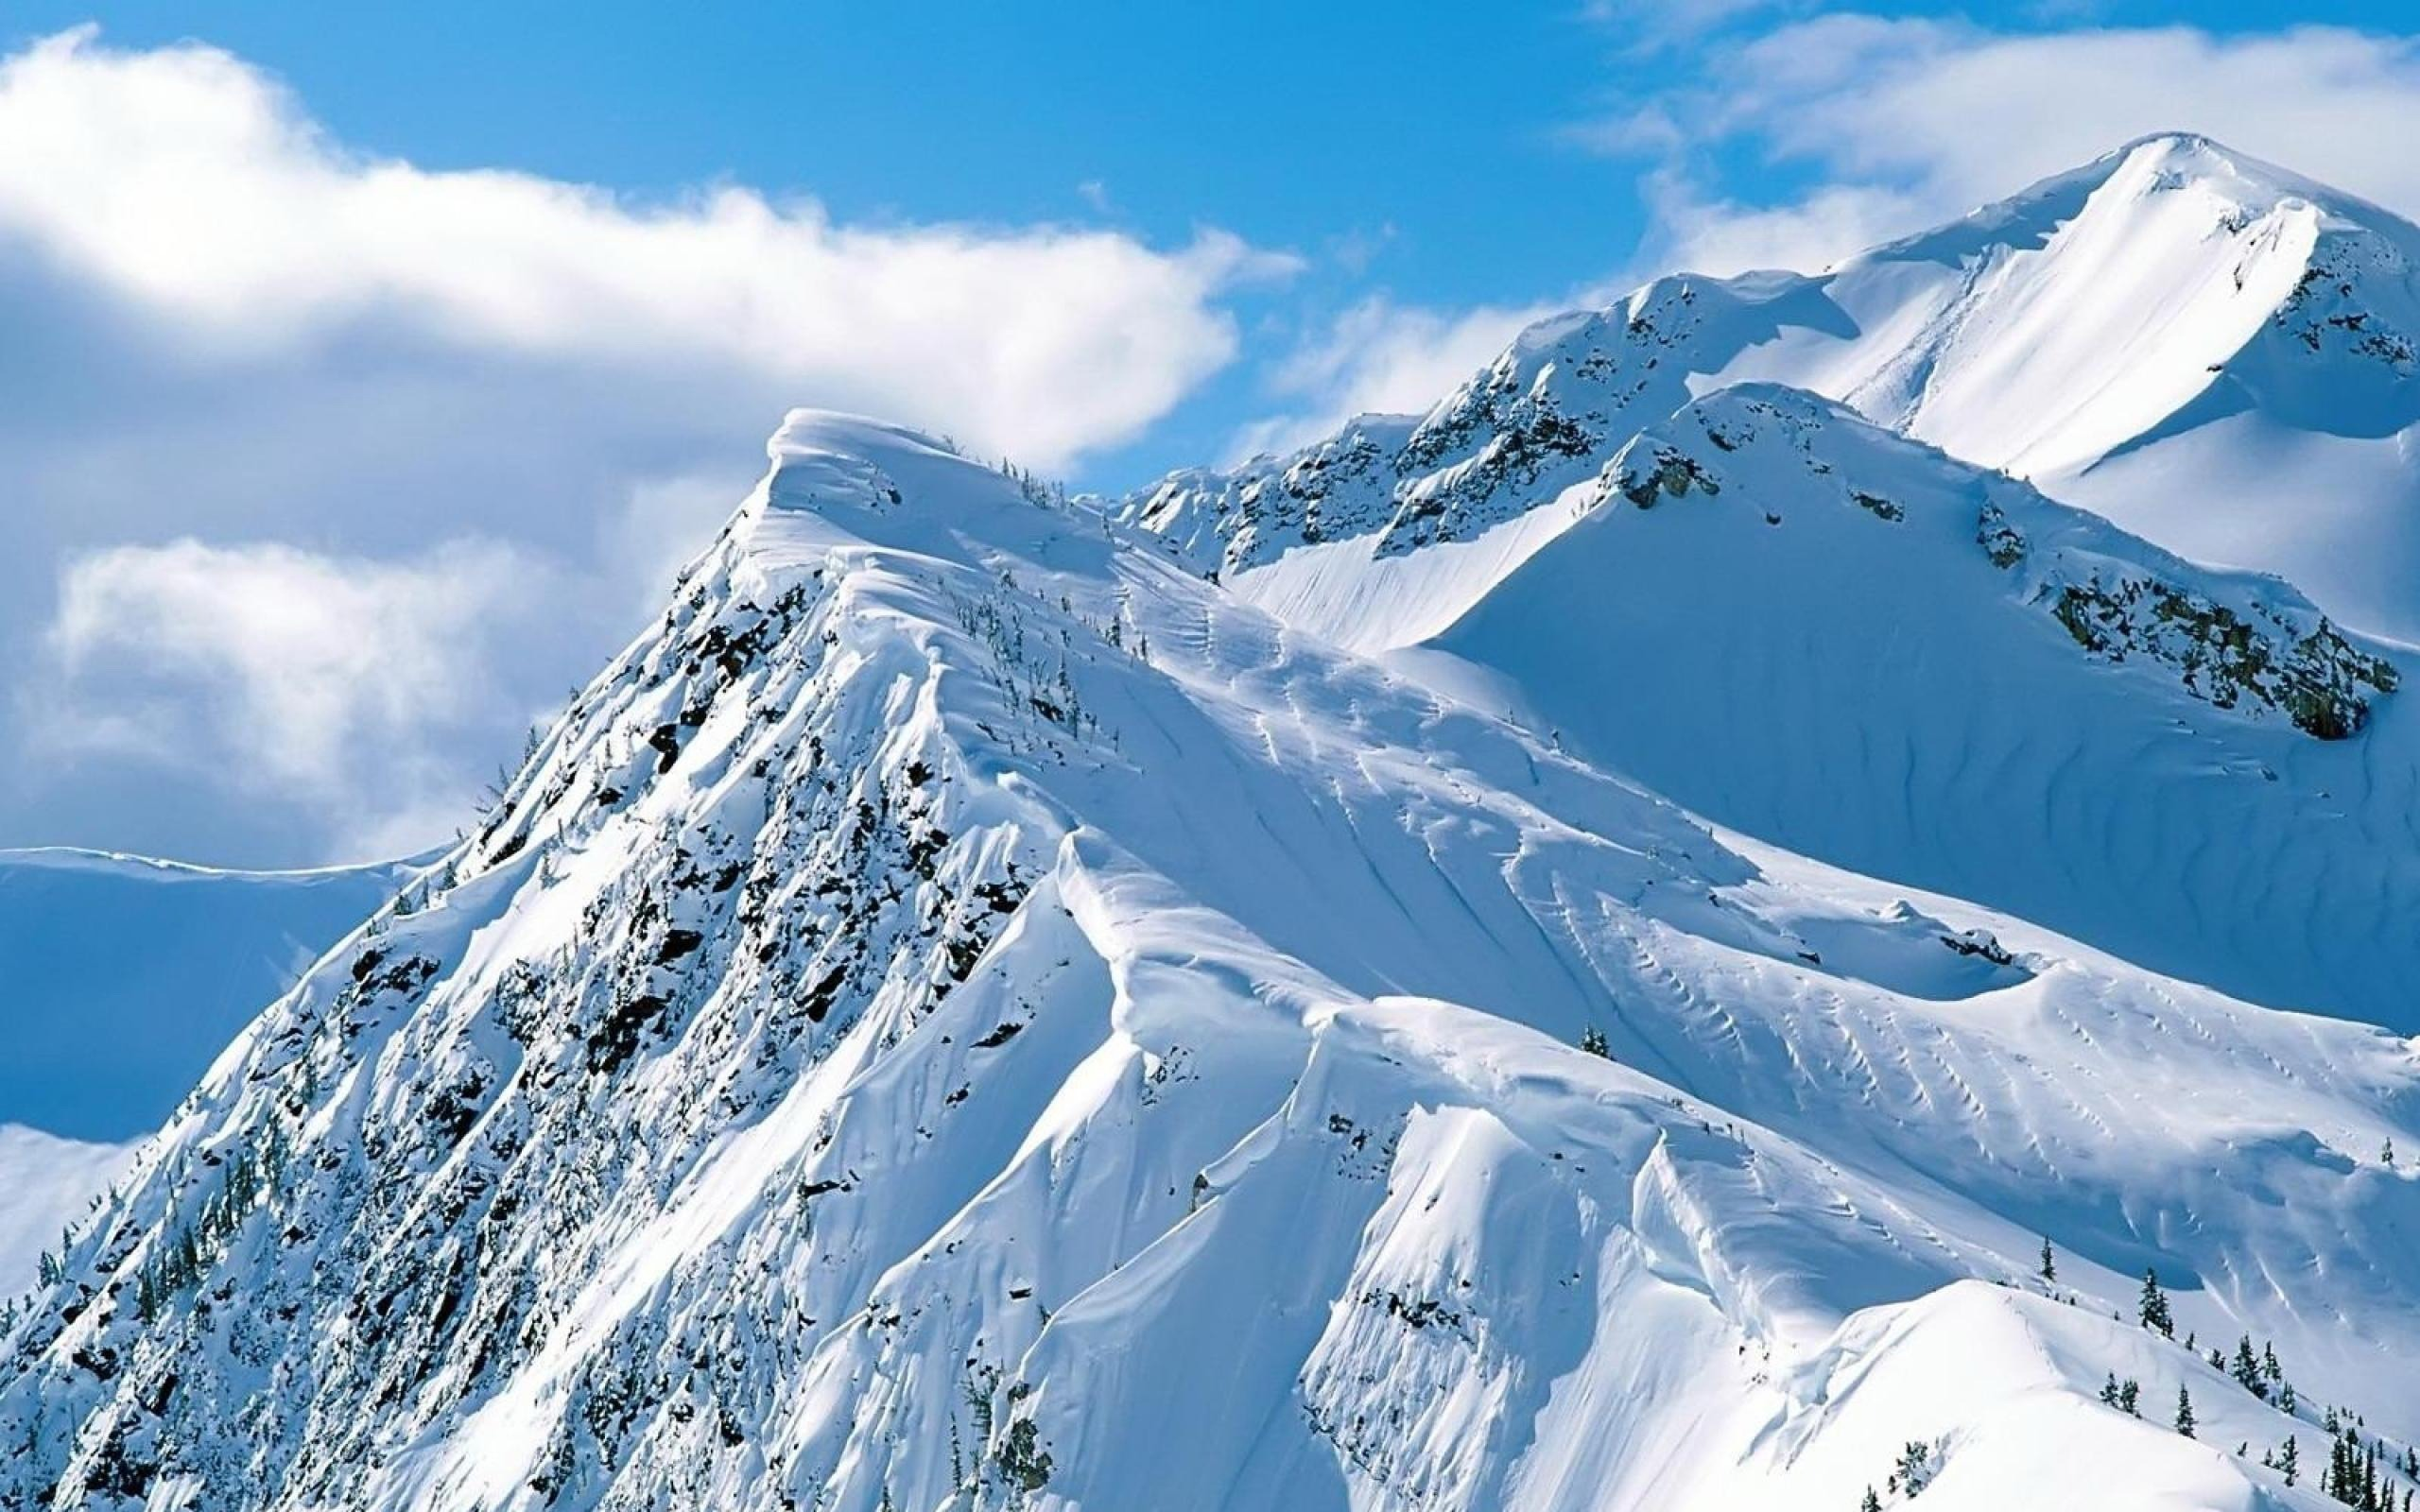 Snowy Mountain Peak Landscape New Wallpaper